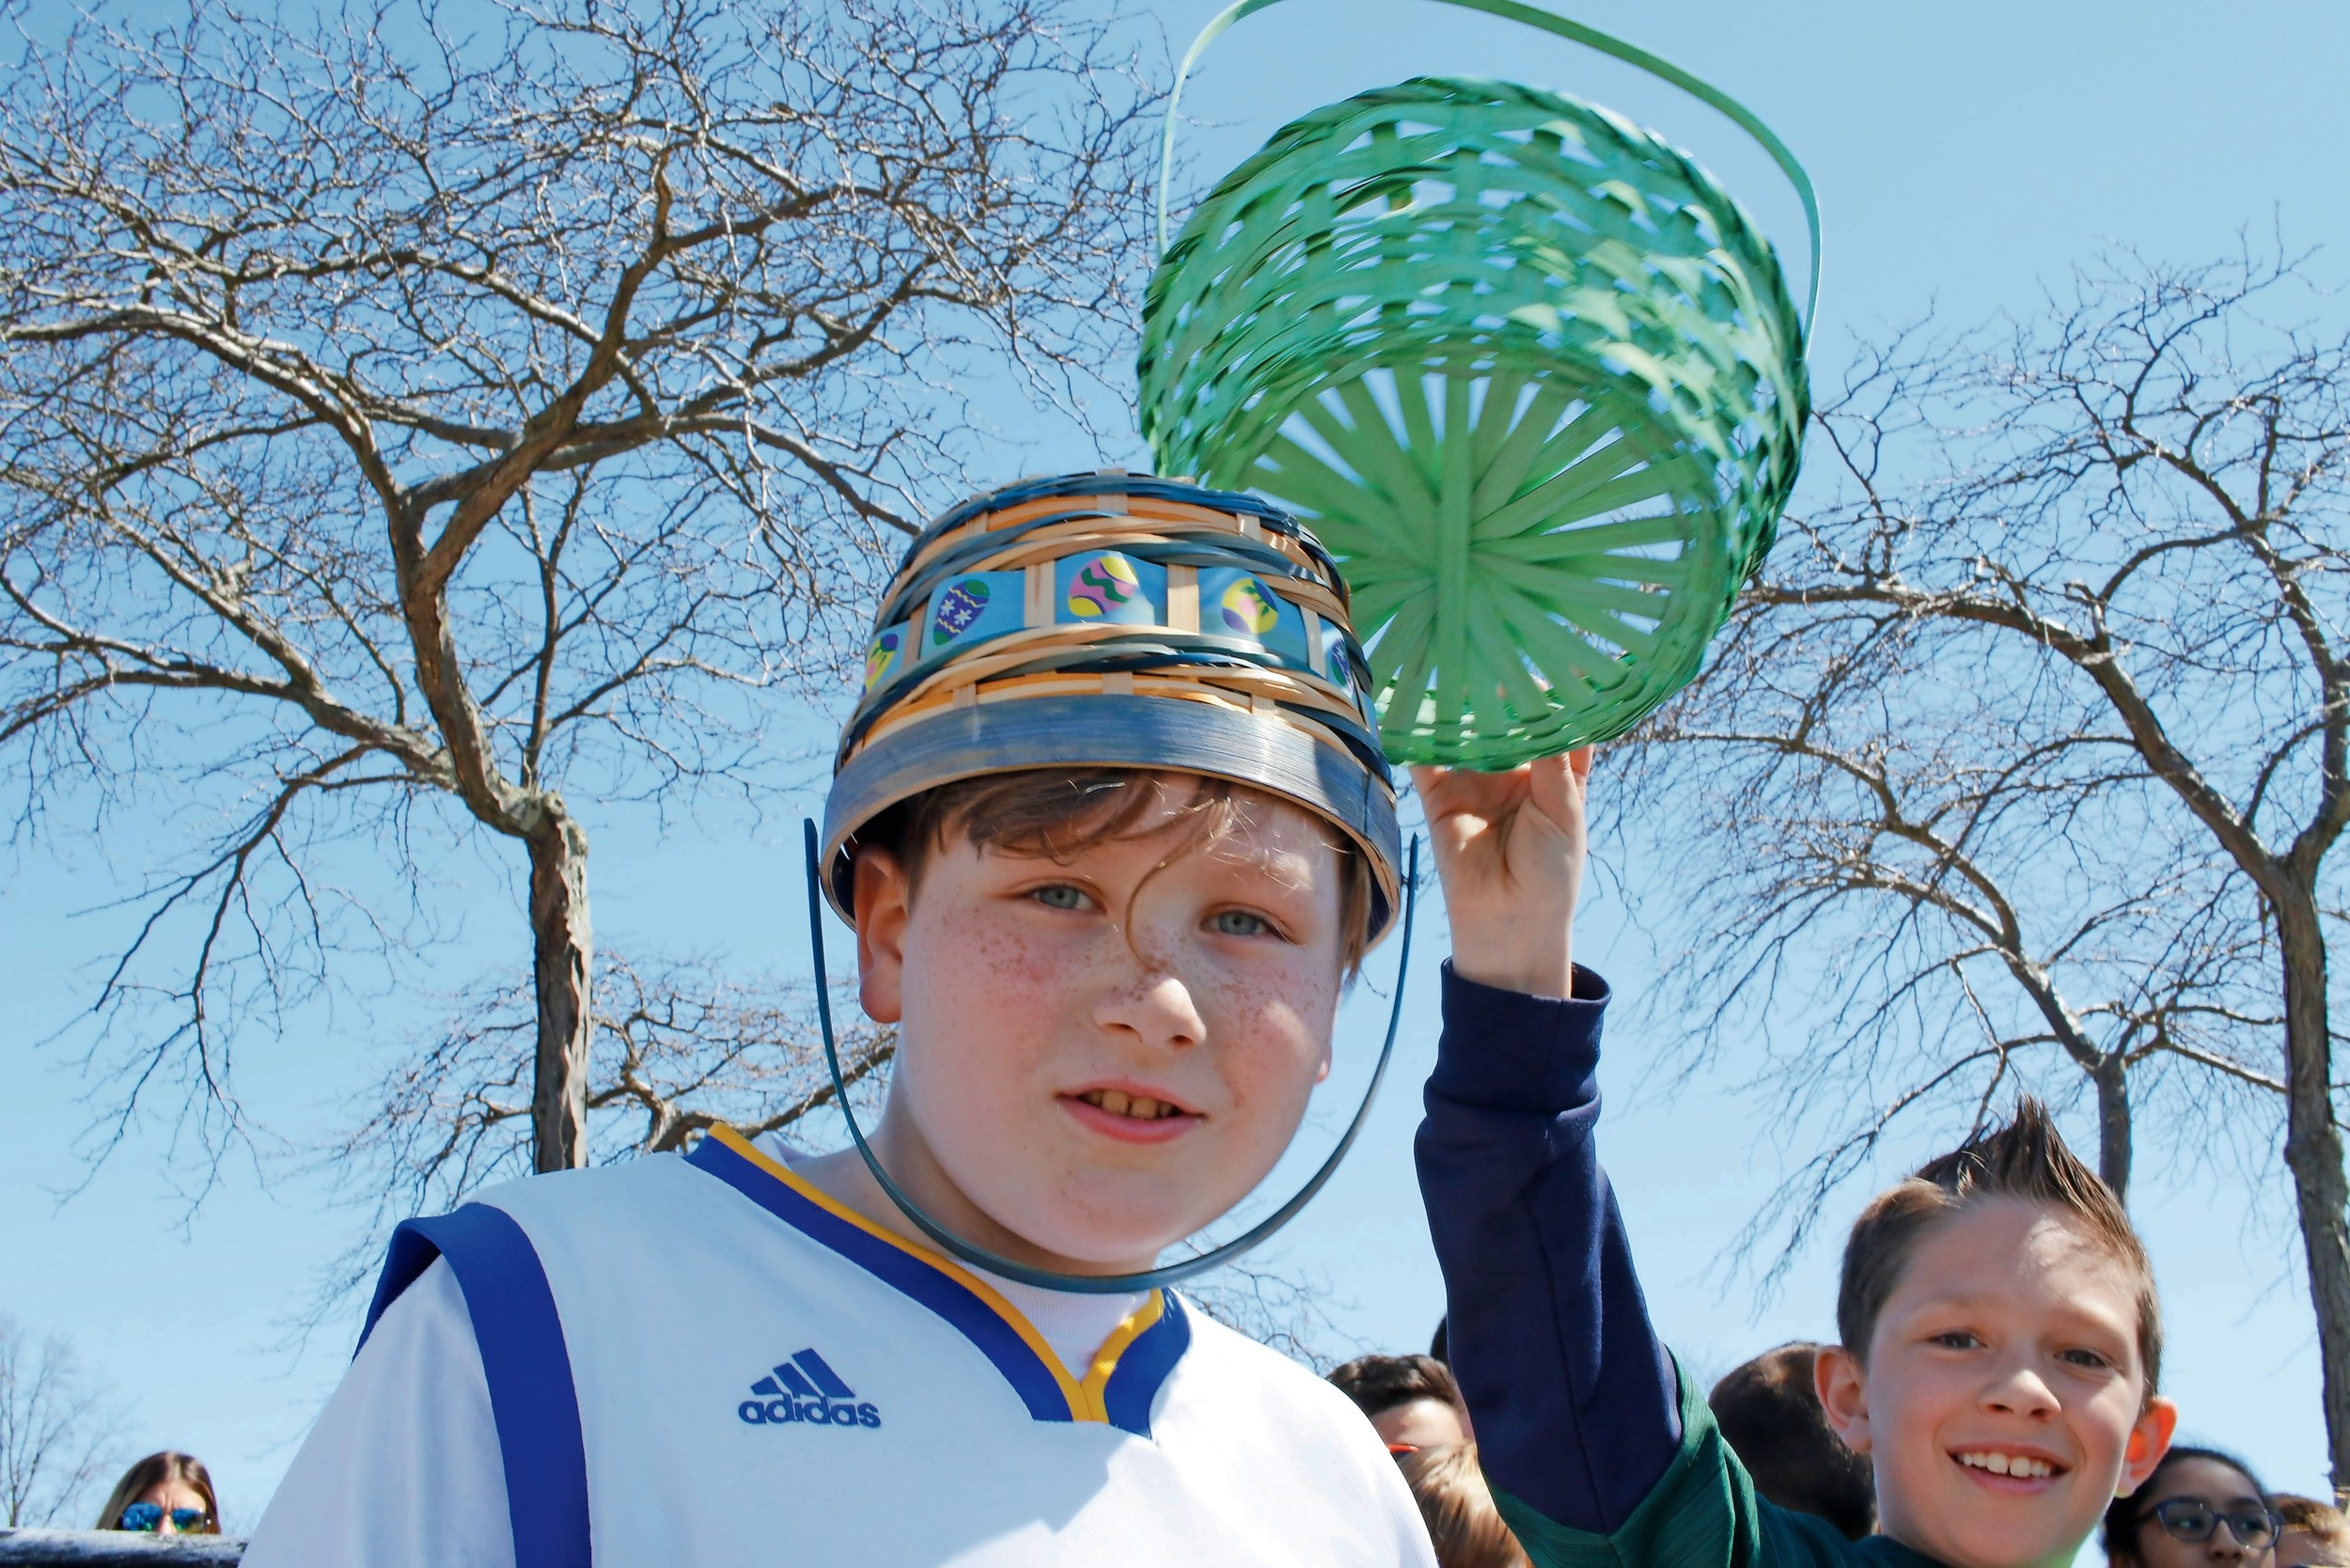 While waiting for the egg hunt to start, Christopher Healy, 9, found other uses for his Easter basket.